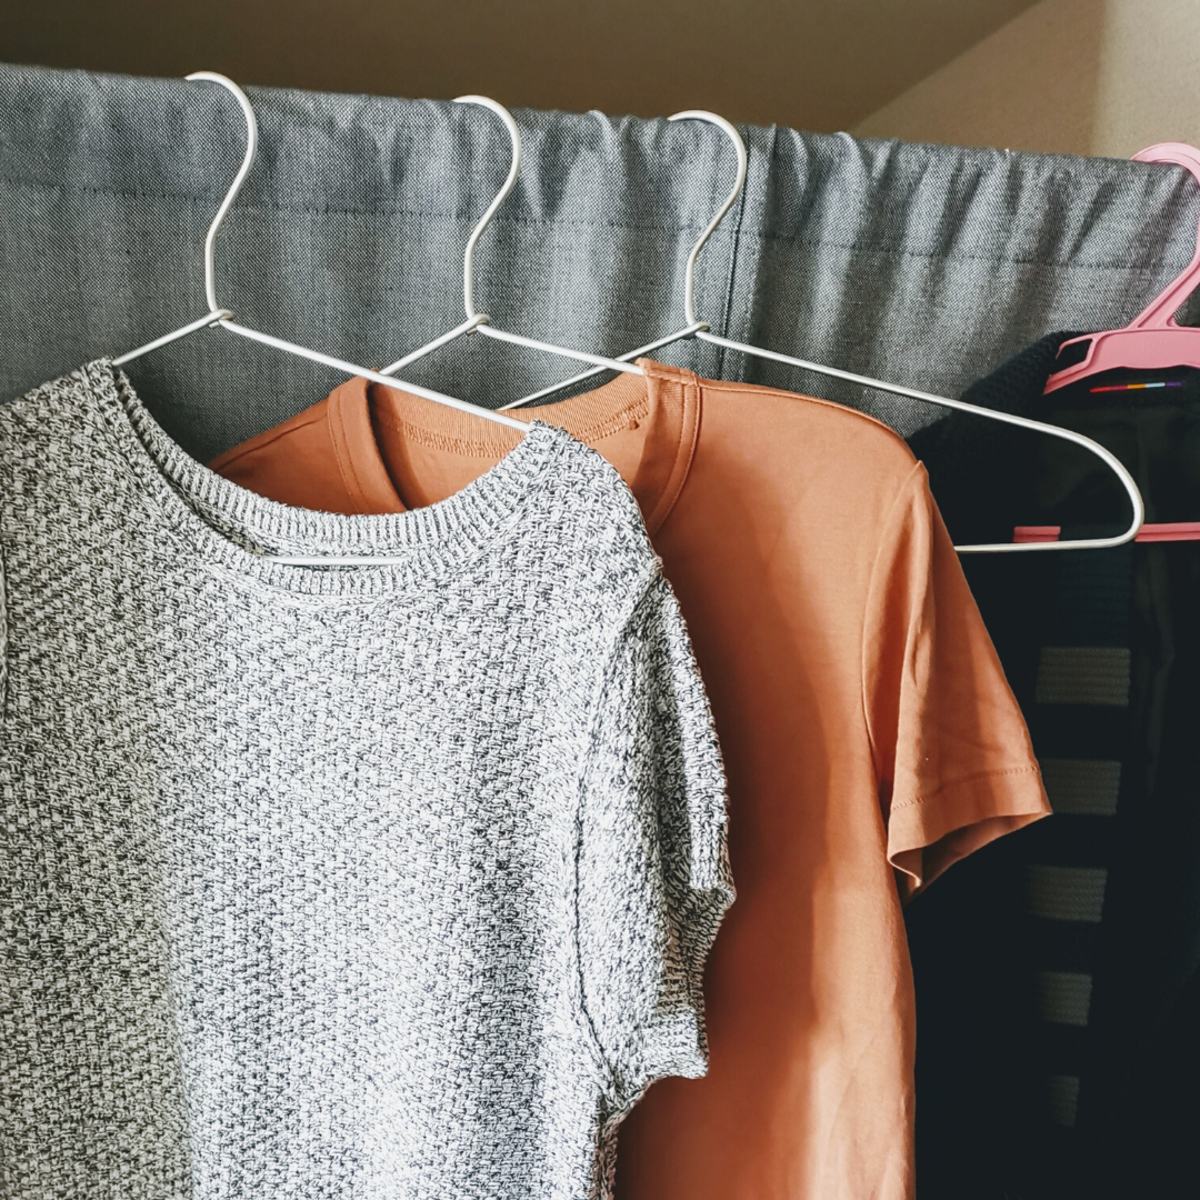 Be sure to hang-dry your garments after removing a stain!